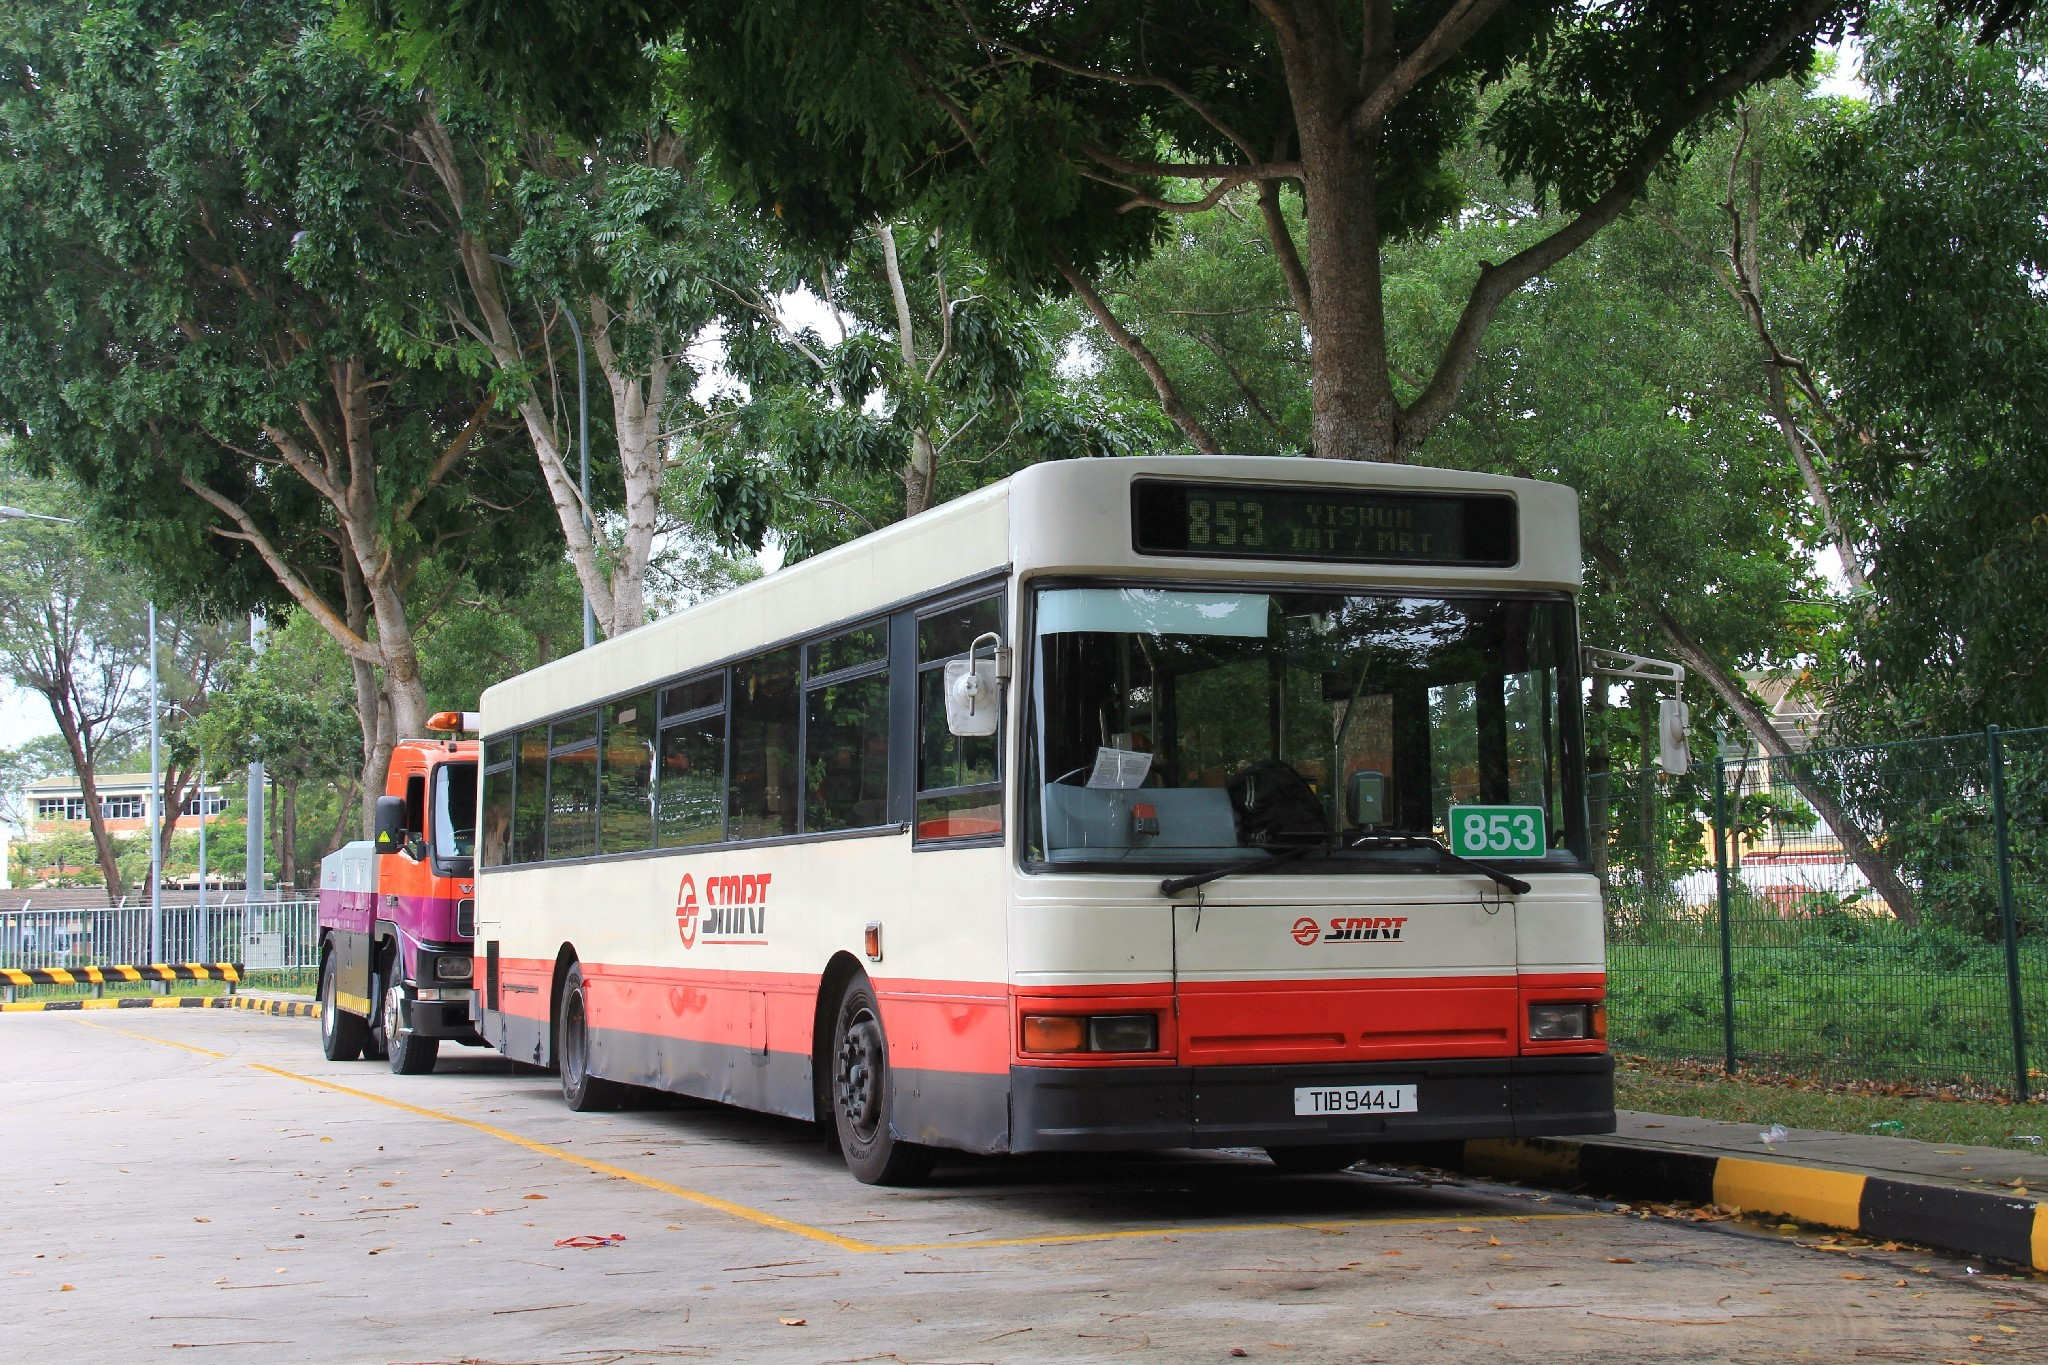 SMRT buses park at a corner of the interchange.